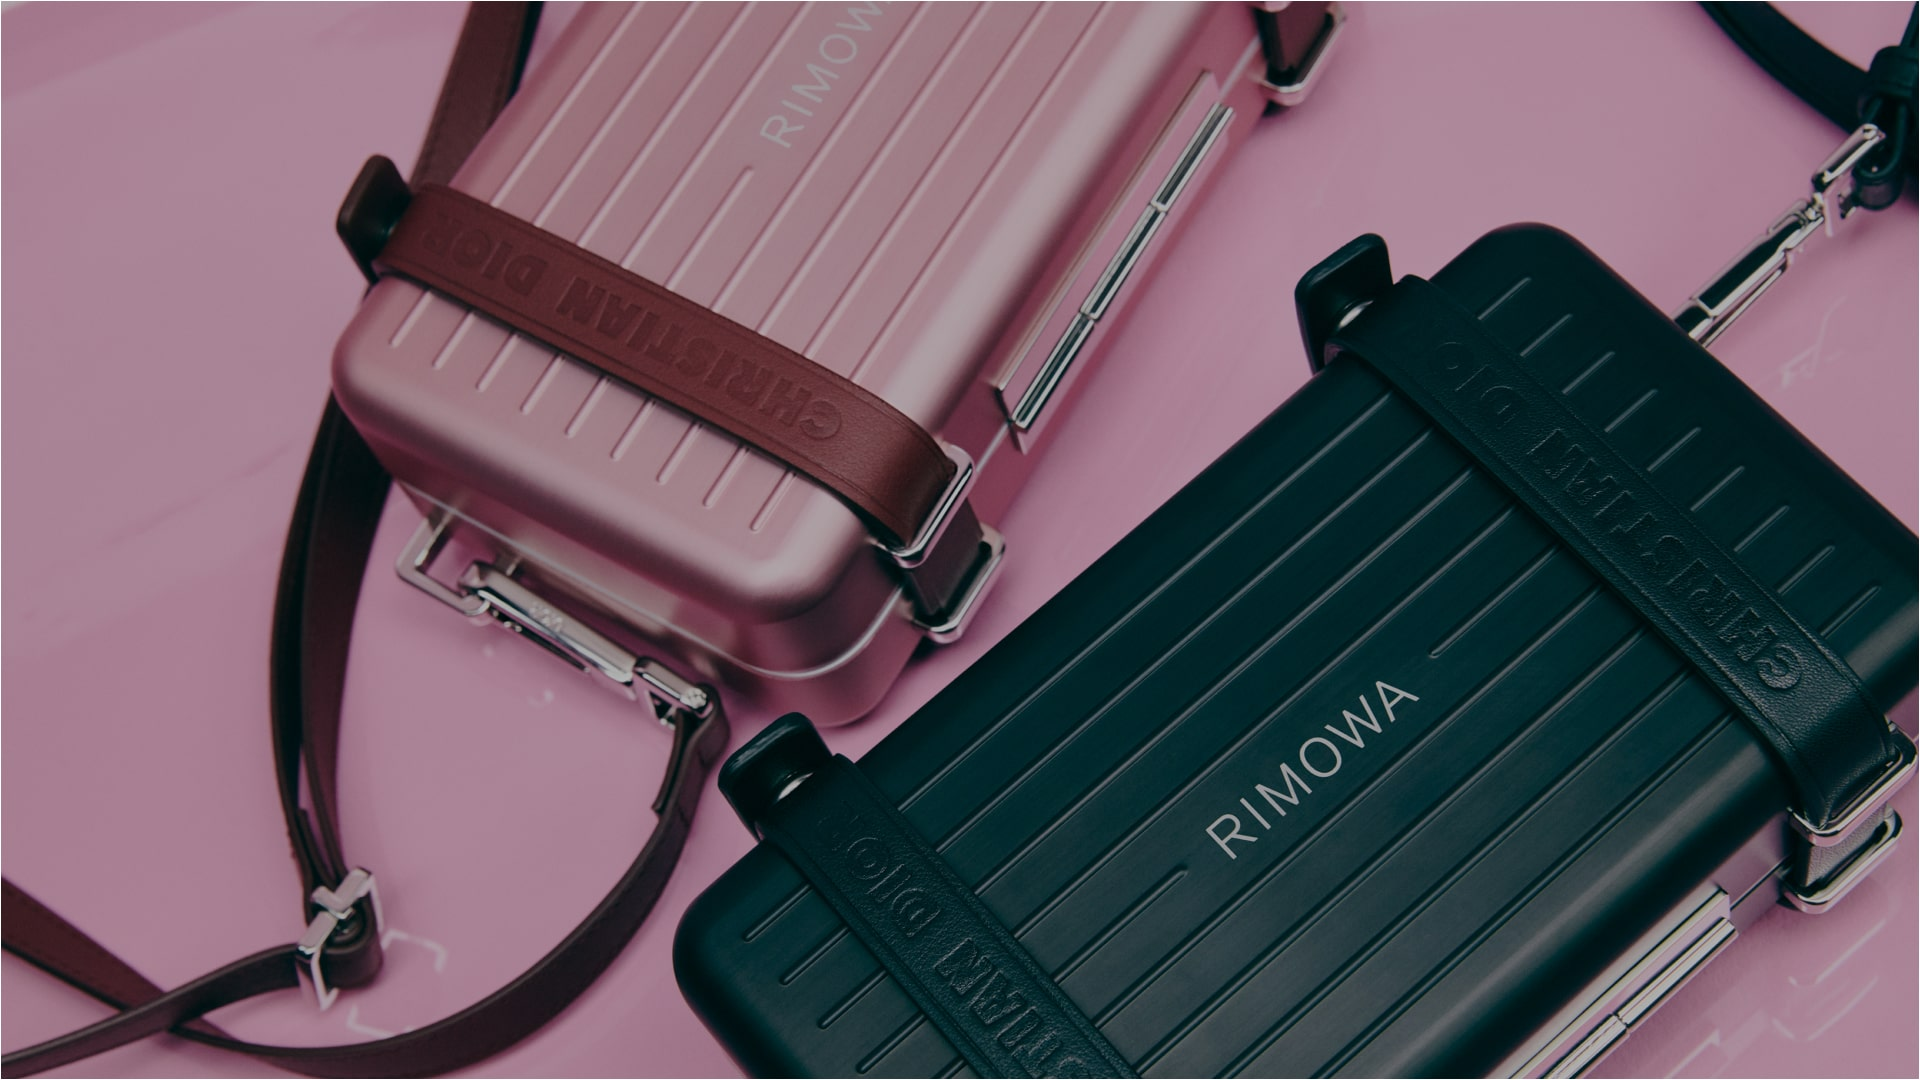 Dior and RIMOWA Personal